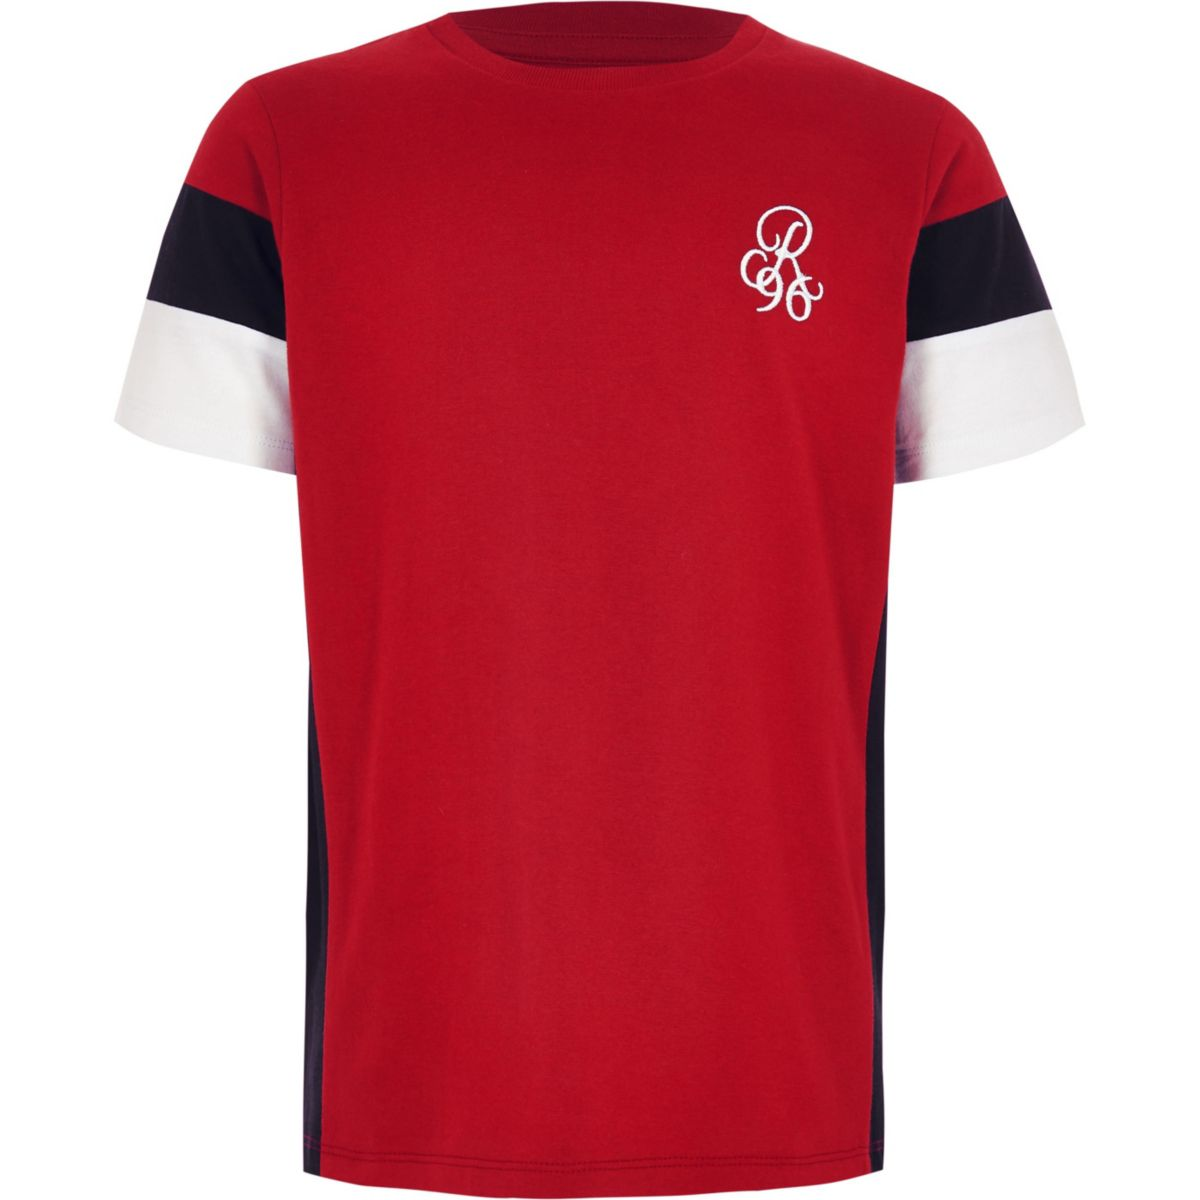 Boys red color block embroidered T-shirt